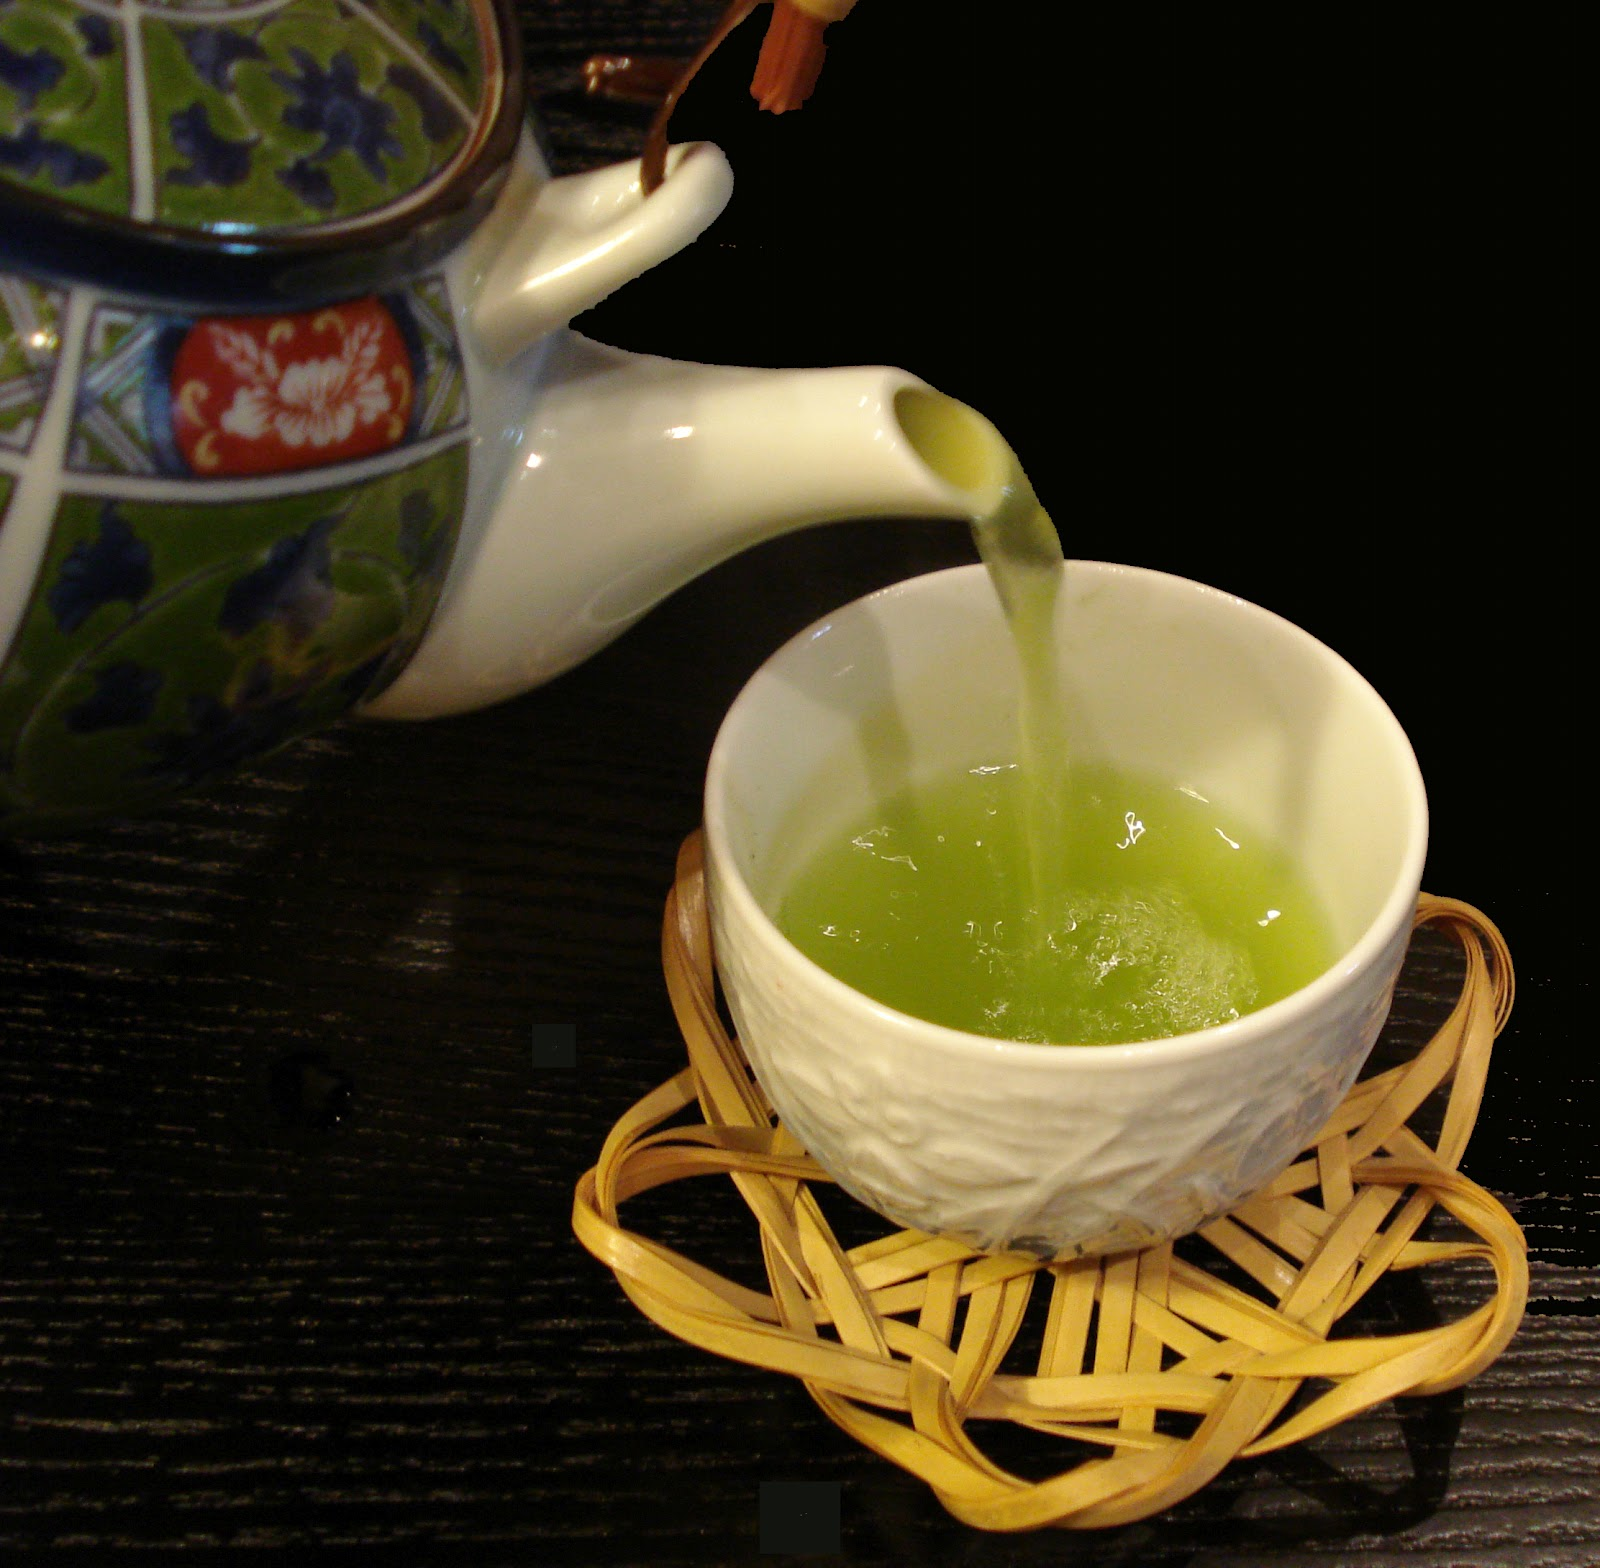 Is green tea green